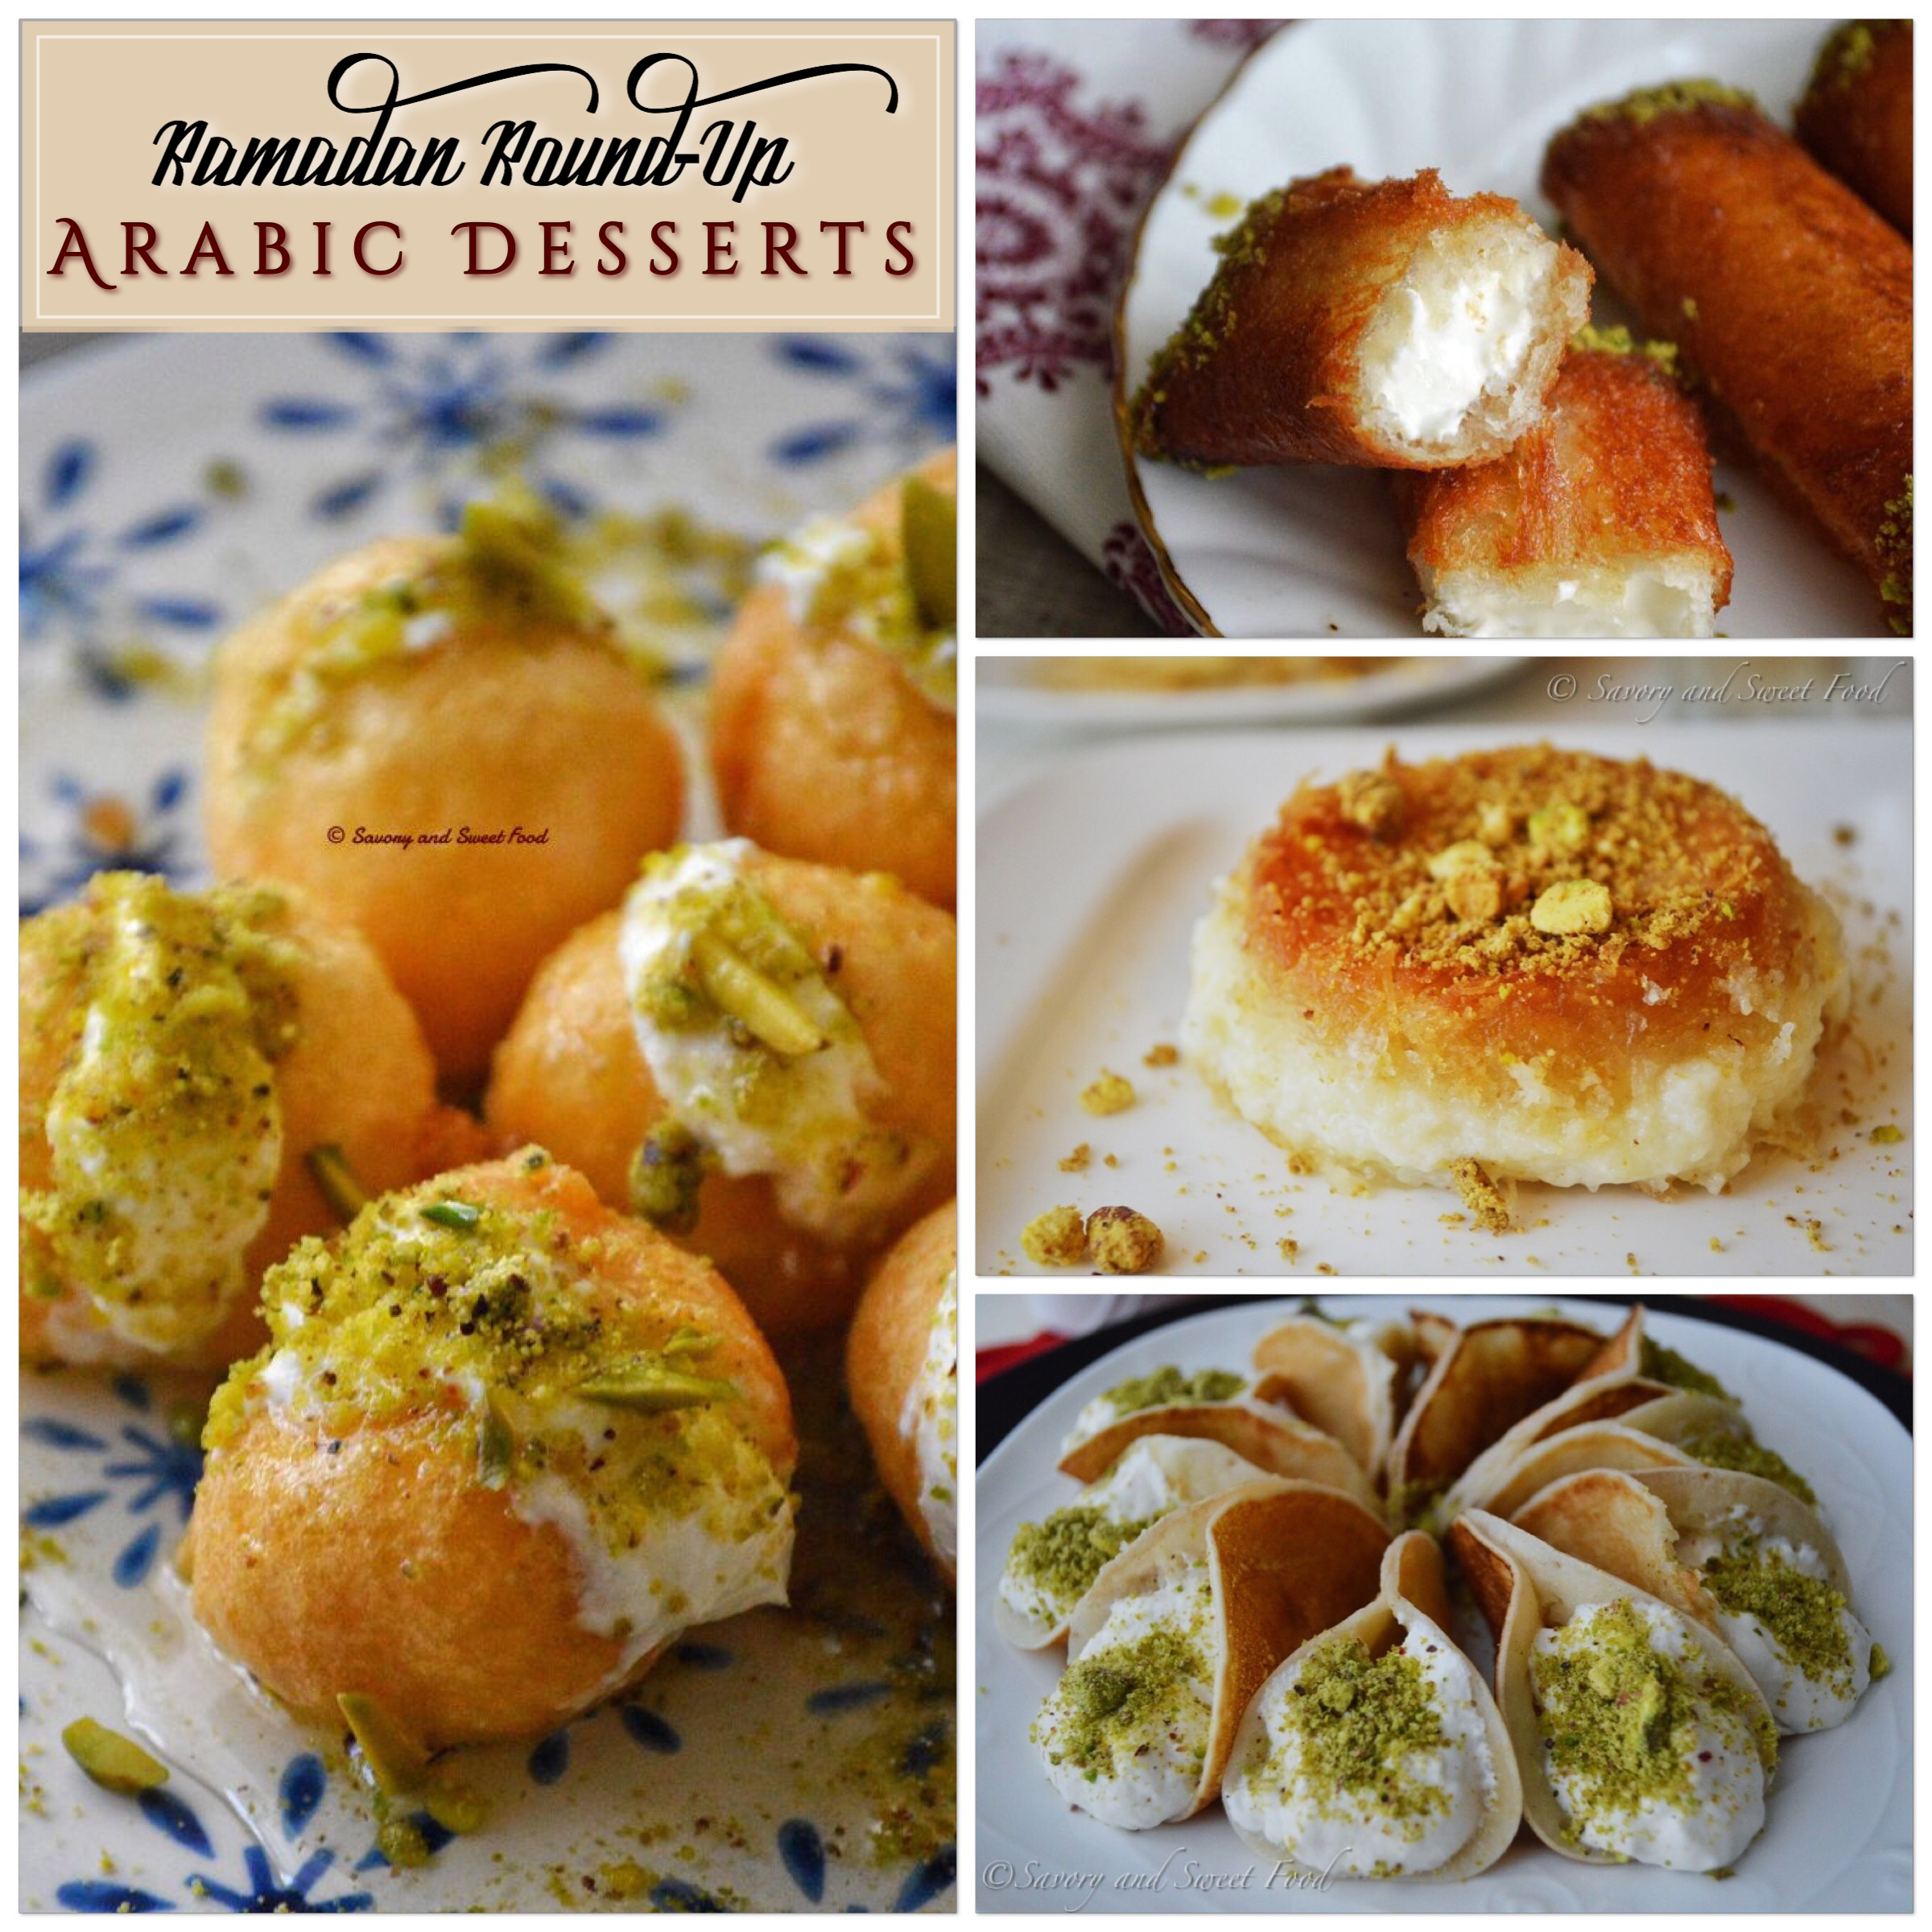 Ramadan 2018 arabic desserts round up savorysweetfood i will be posting it in three sections in shaa allah so here goes the first part where i compiled all the arabic inspired dessert recipes enjoy forumfinder Choice Image